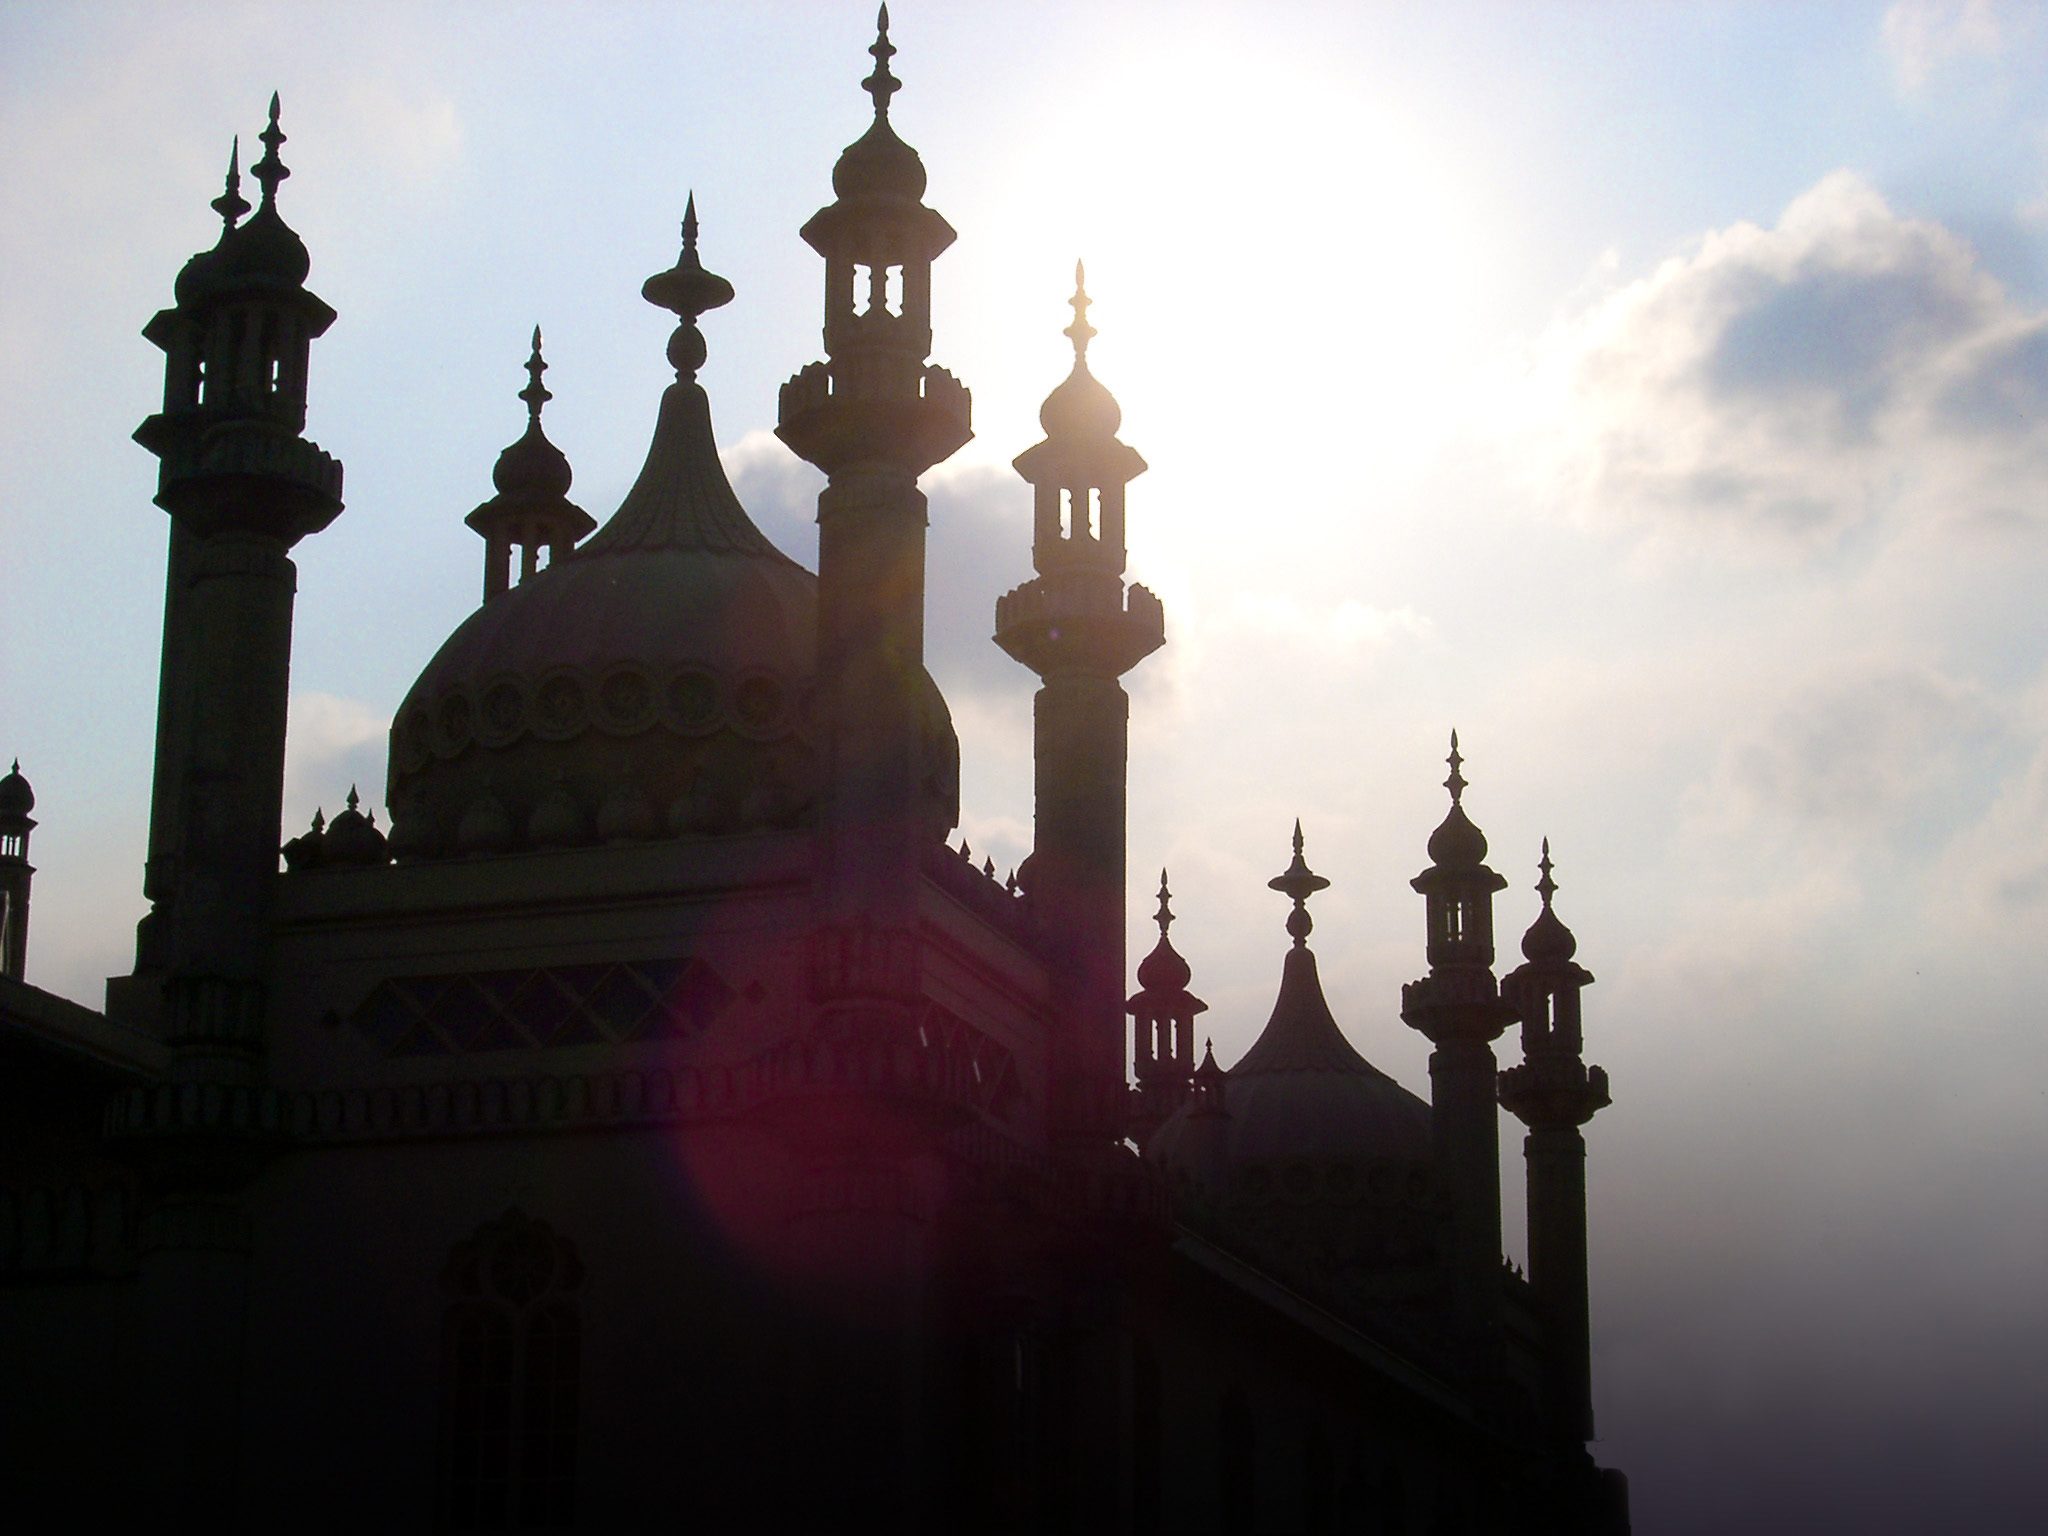 Famous Architectural Royal Pavilion Building in Brighton, England, Reflected by Sunlight.